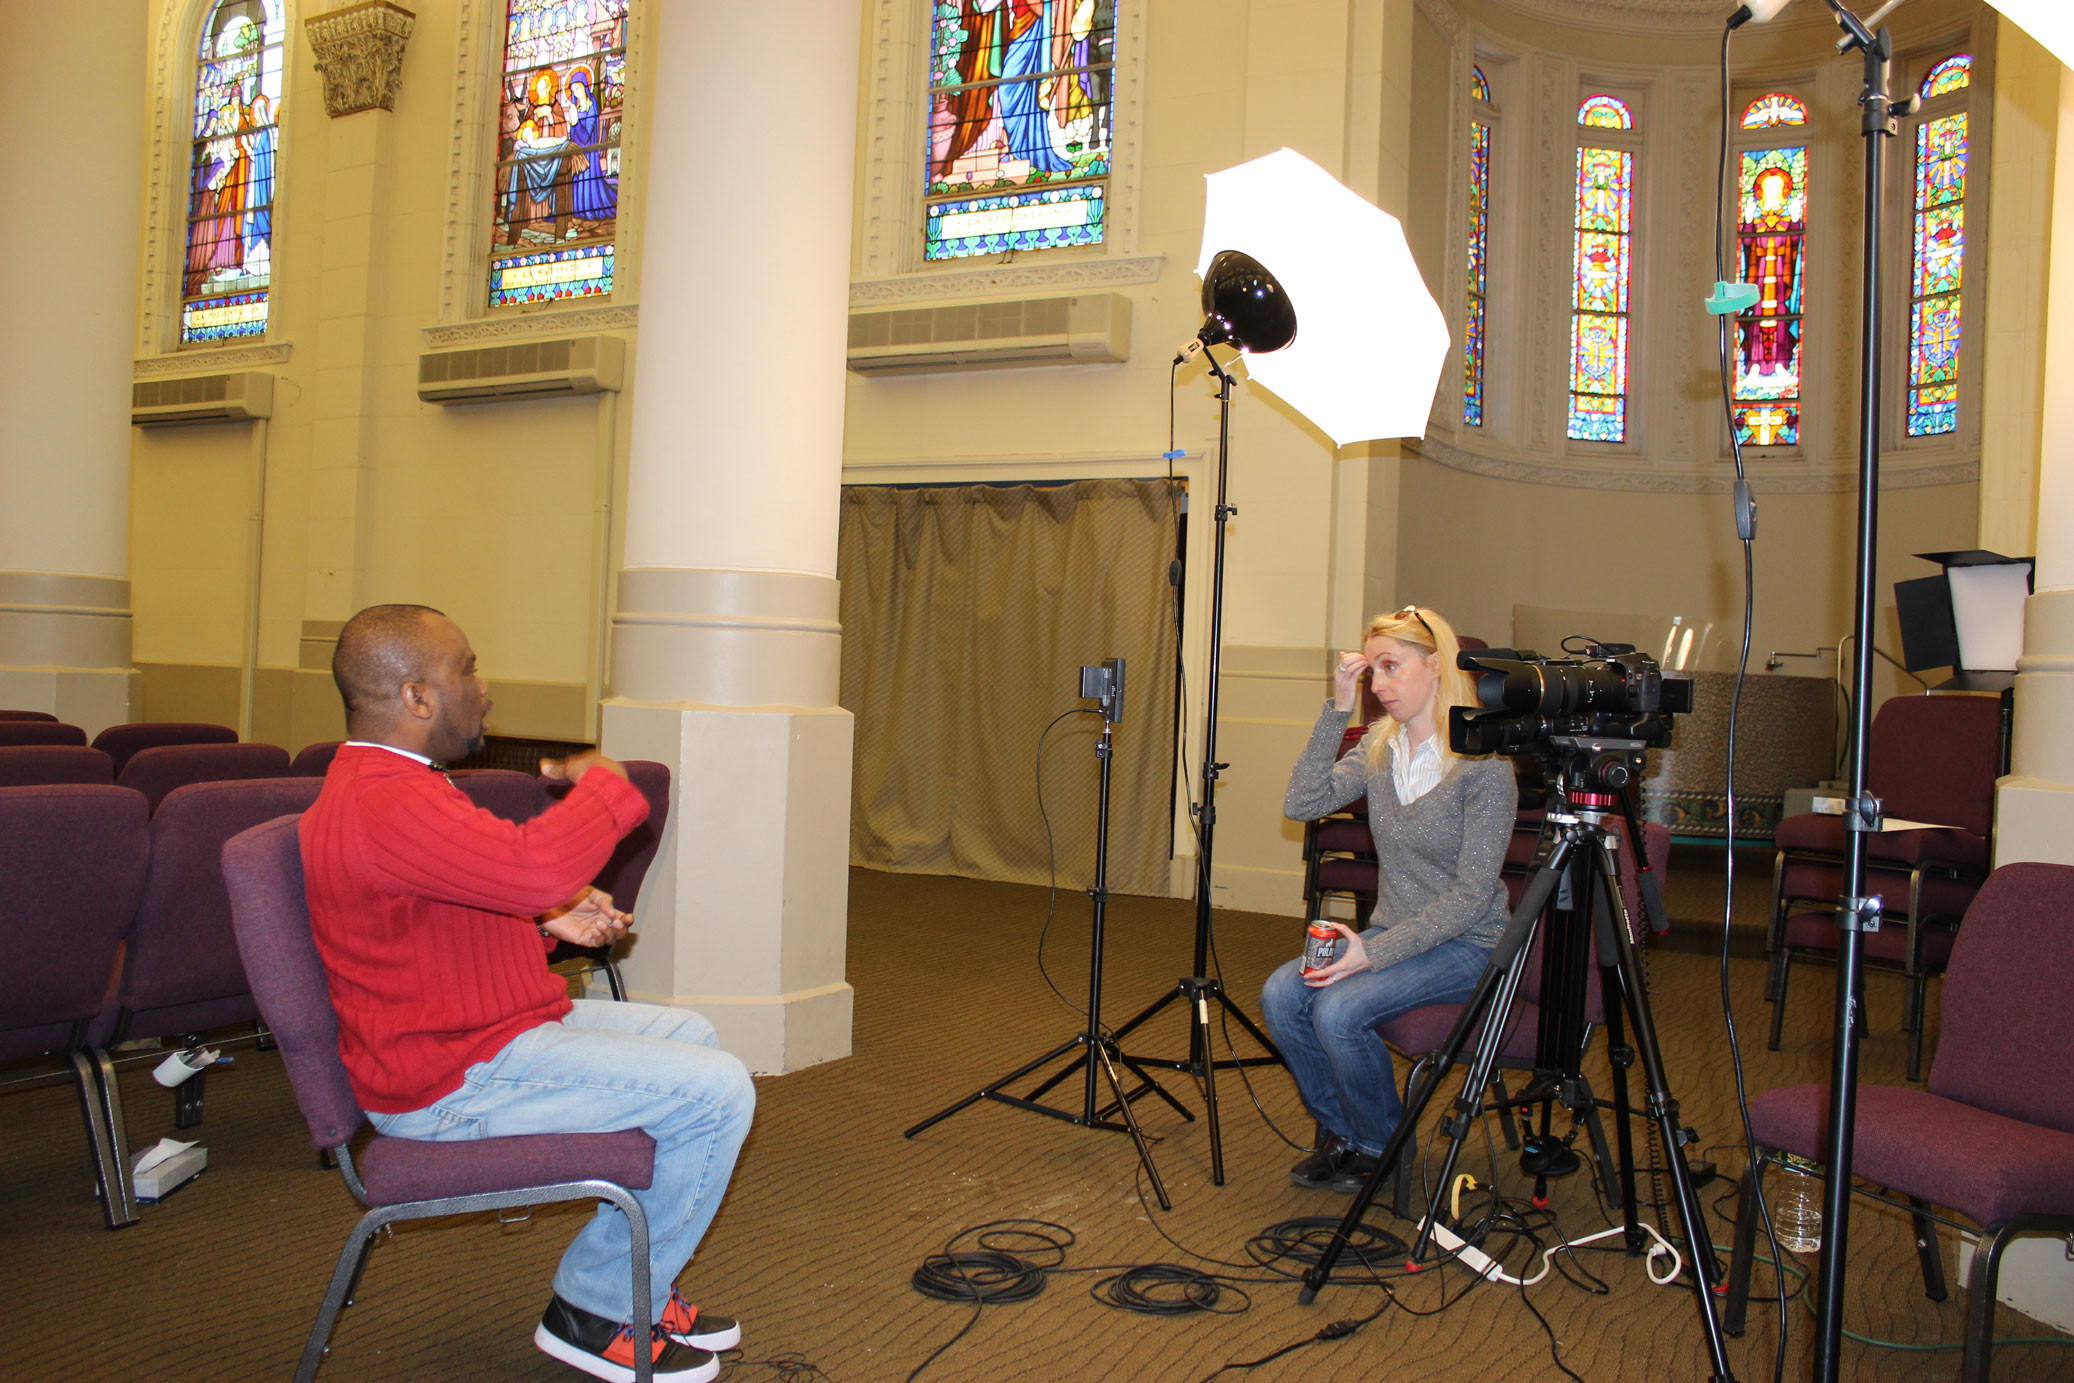 Interview Style Commercial #5a